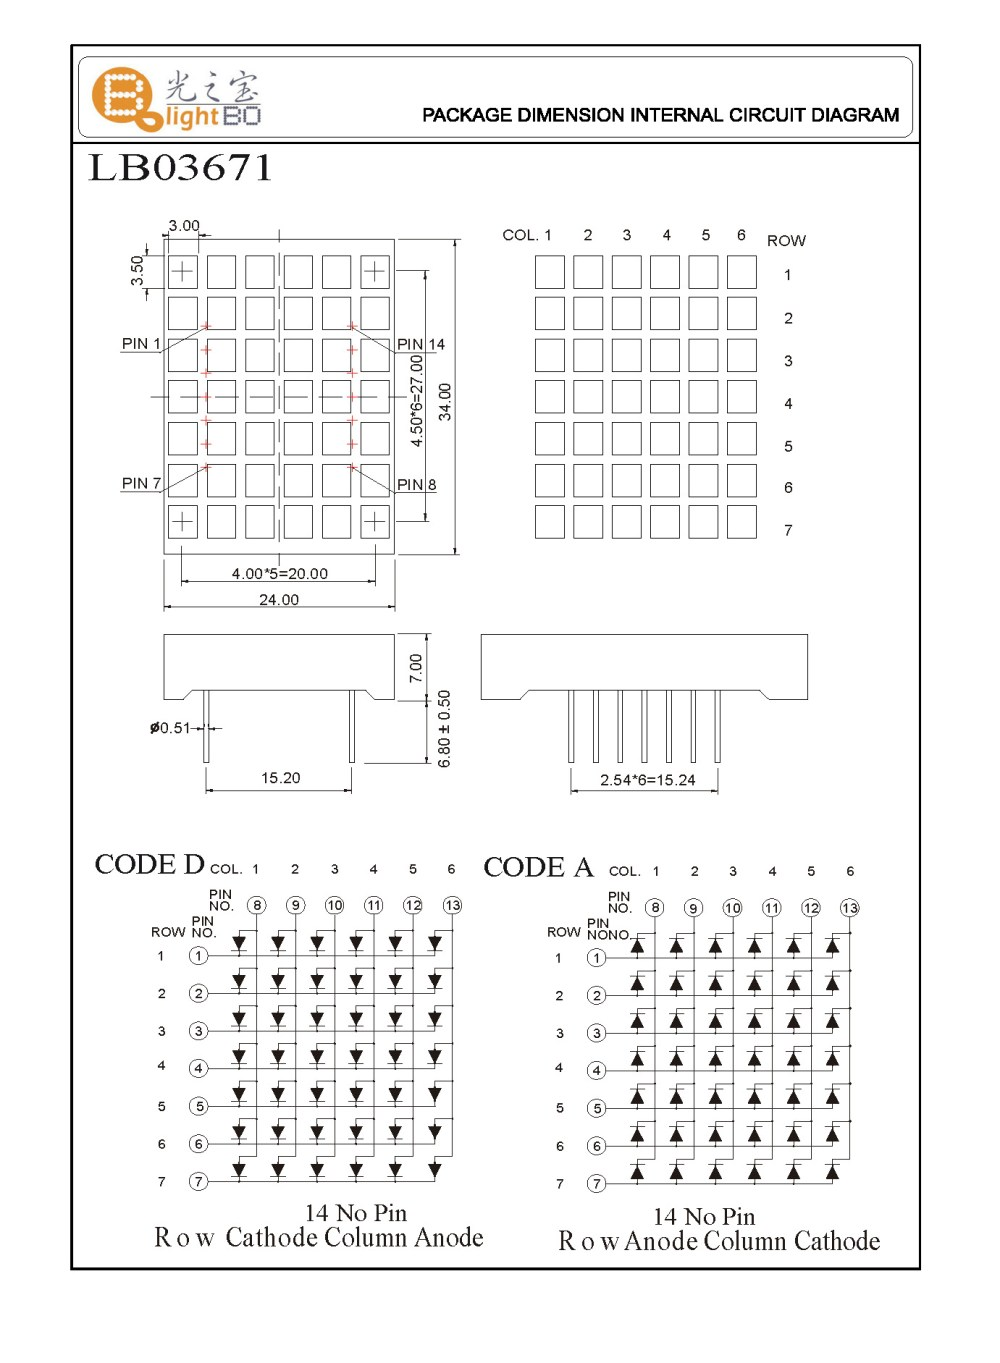 medium resolution of related category 8 x 8 dot matrix led display 5 x 7 dot matrix led display 8 x 8 square dot matrix led displays 16 x 16 dot matrix led displays